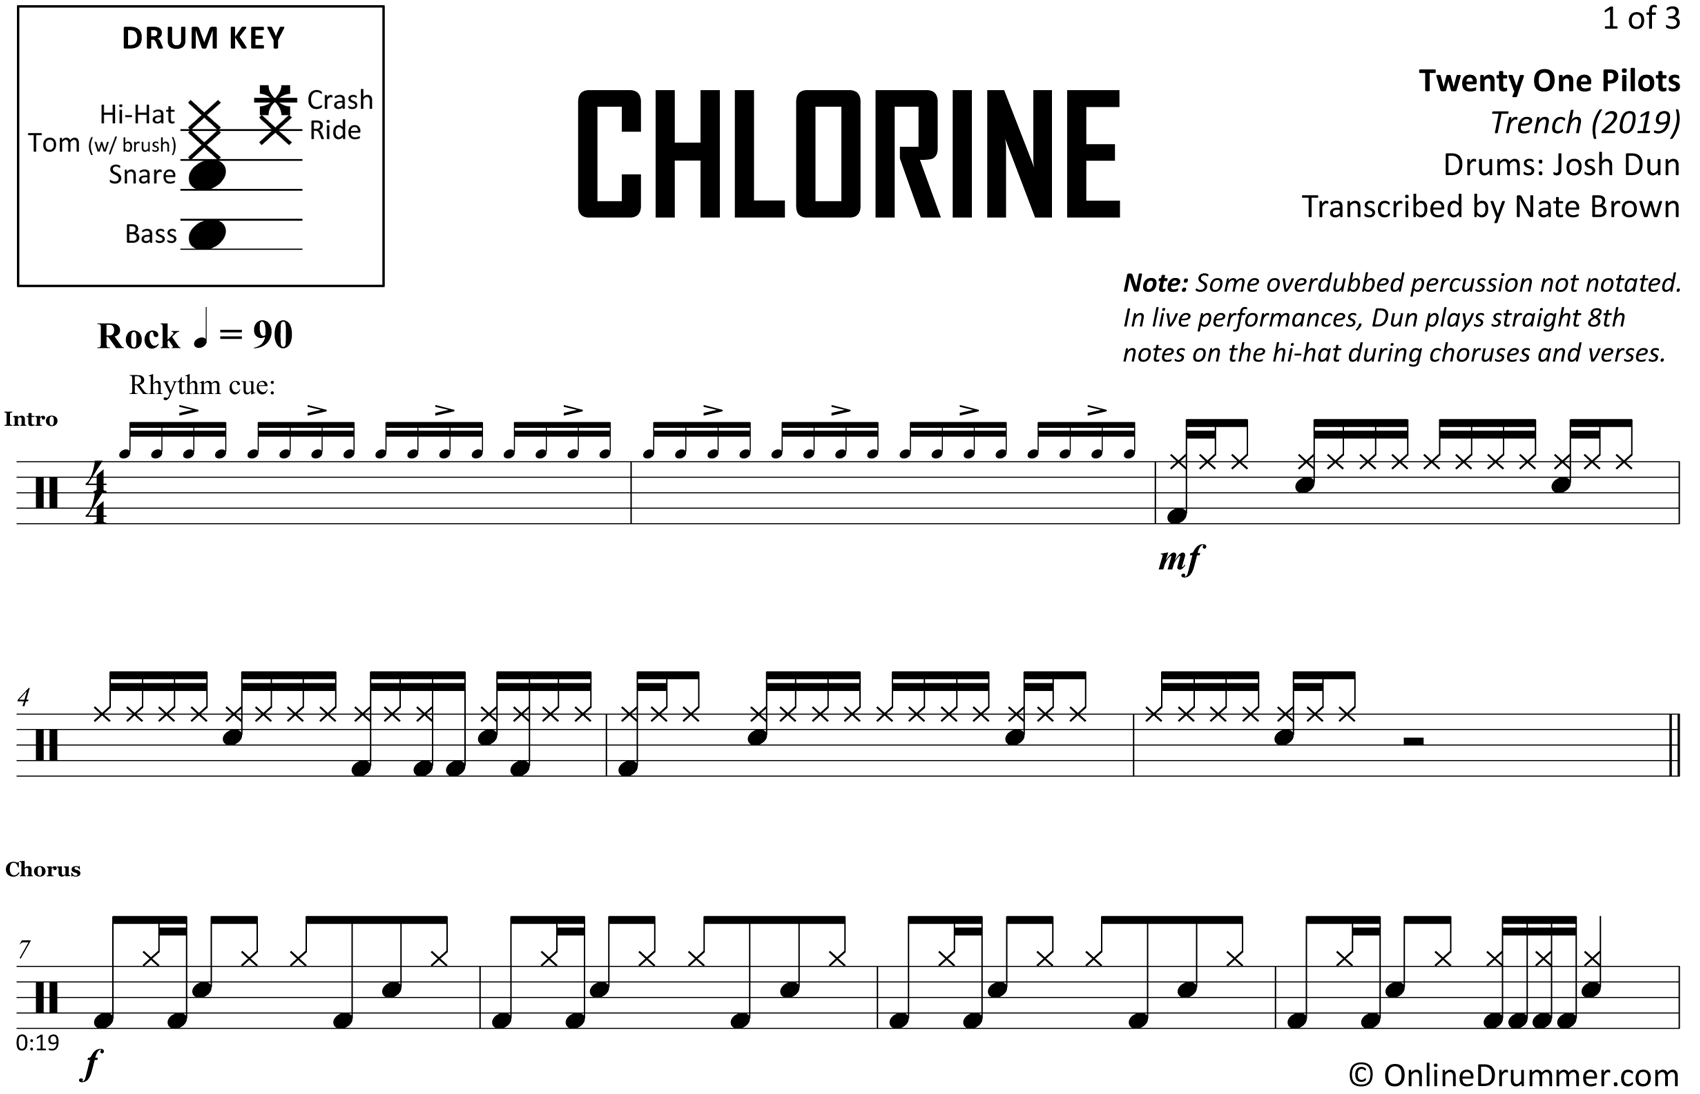 Chlorine - Twenty One Pilots - Drum Sheet Music